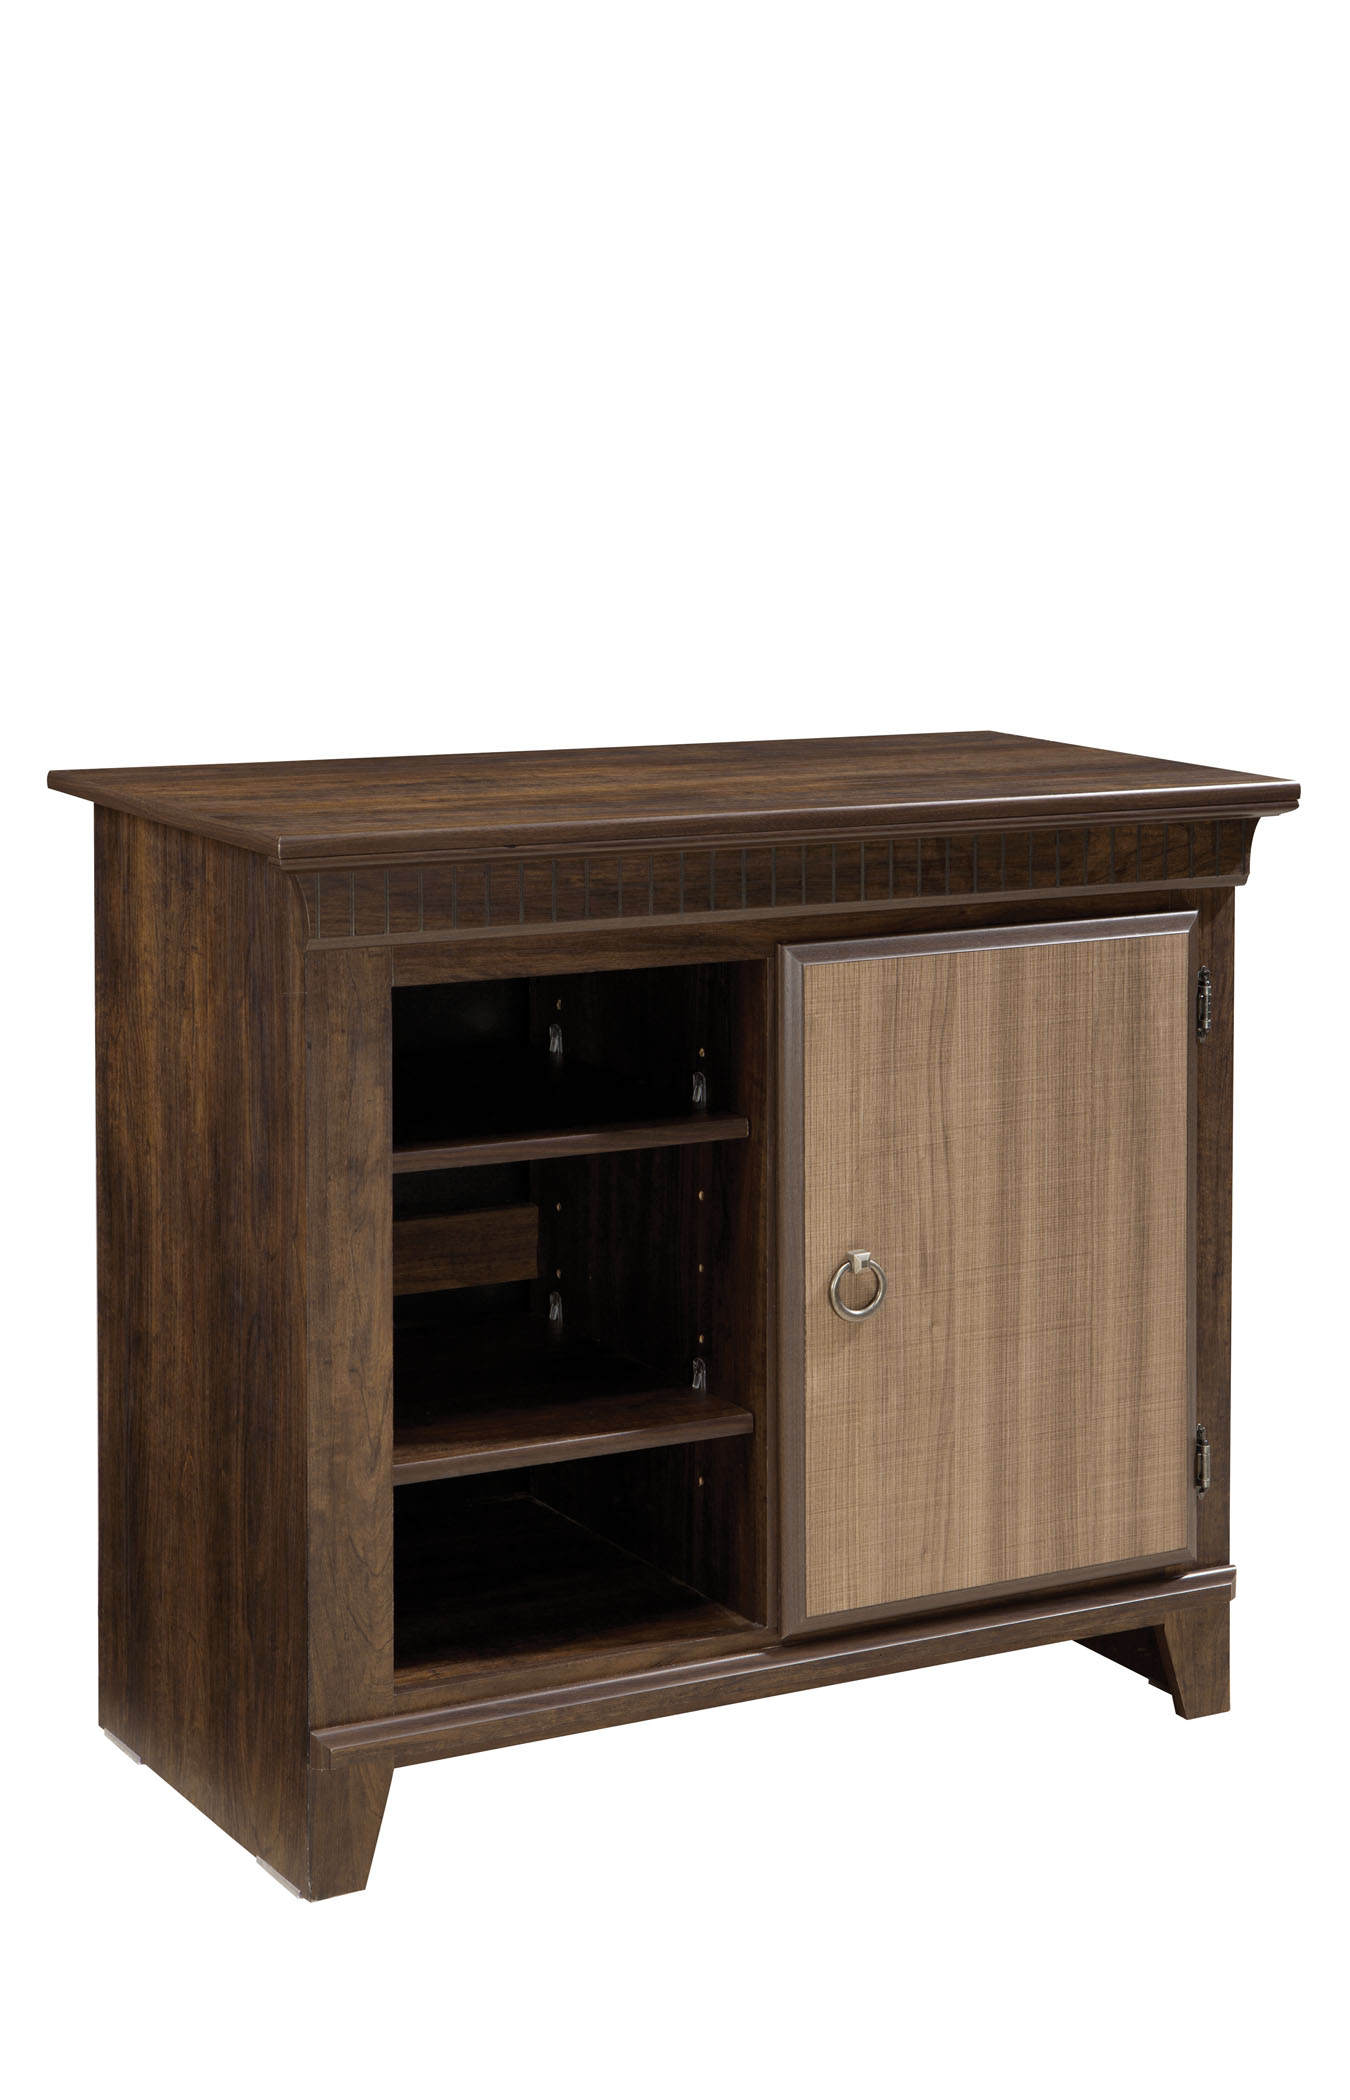 Standard furniture youth bedroom weatherly 68150 home American standard bedroom furniture